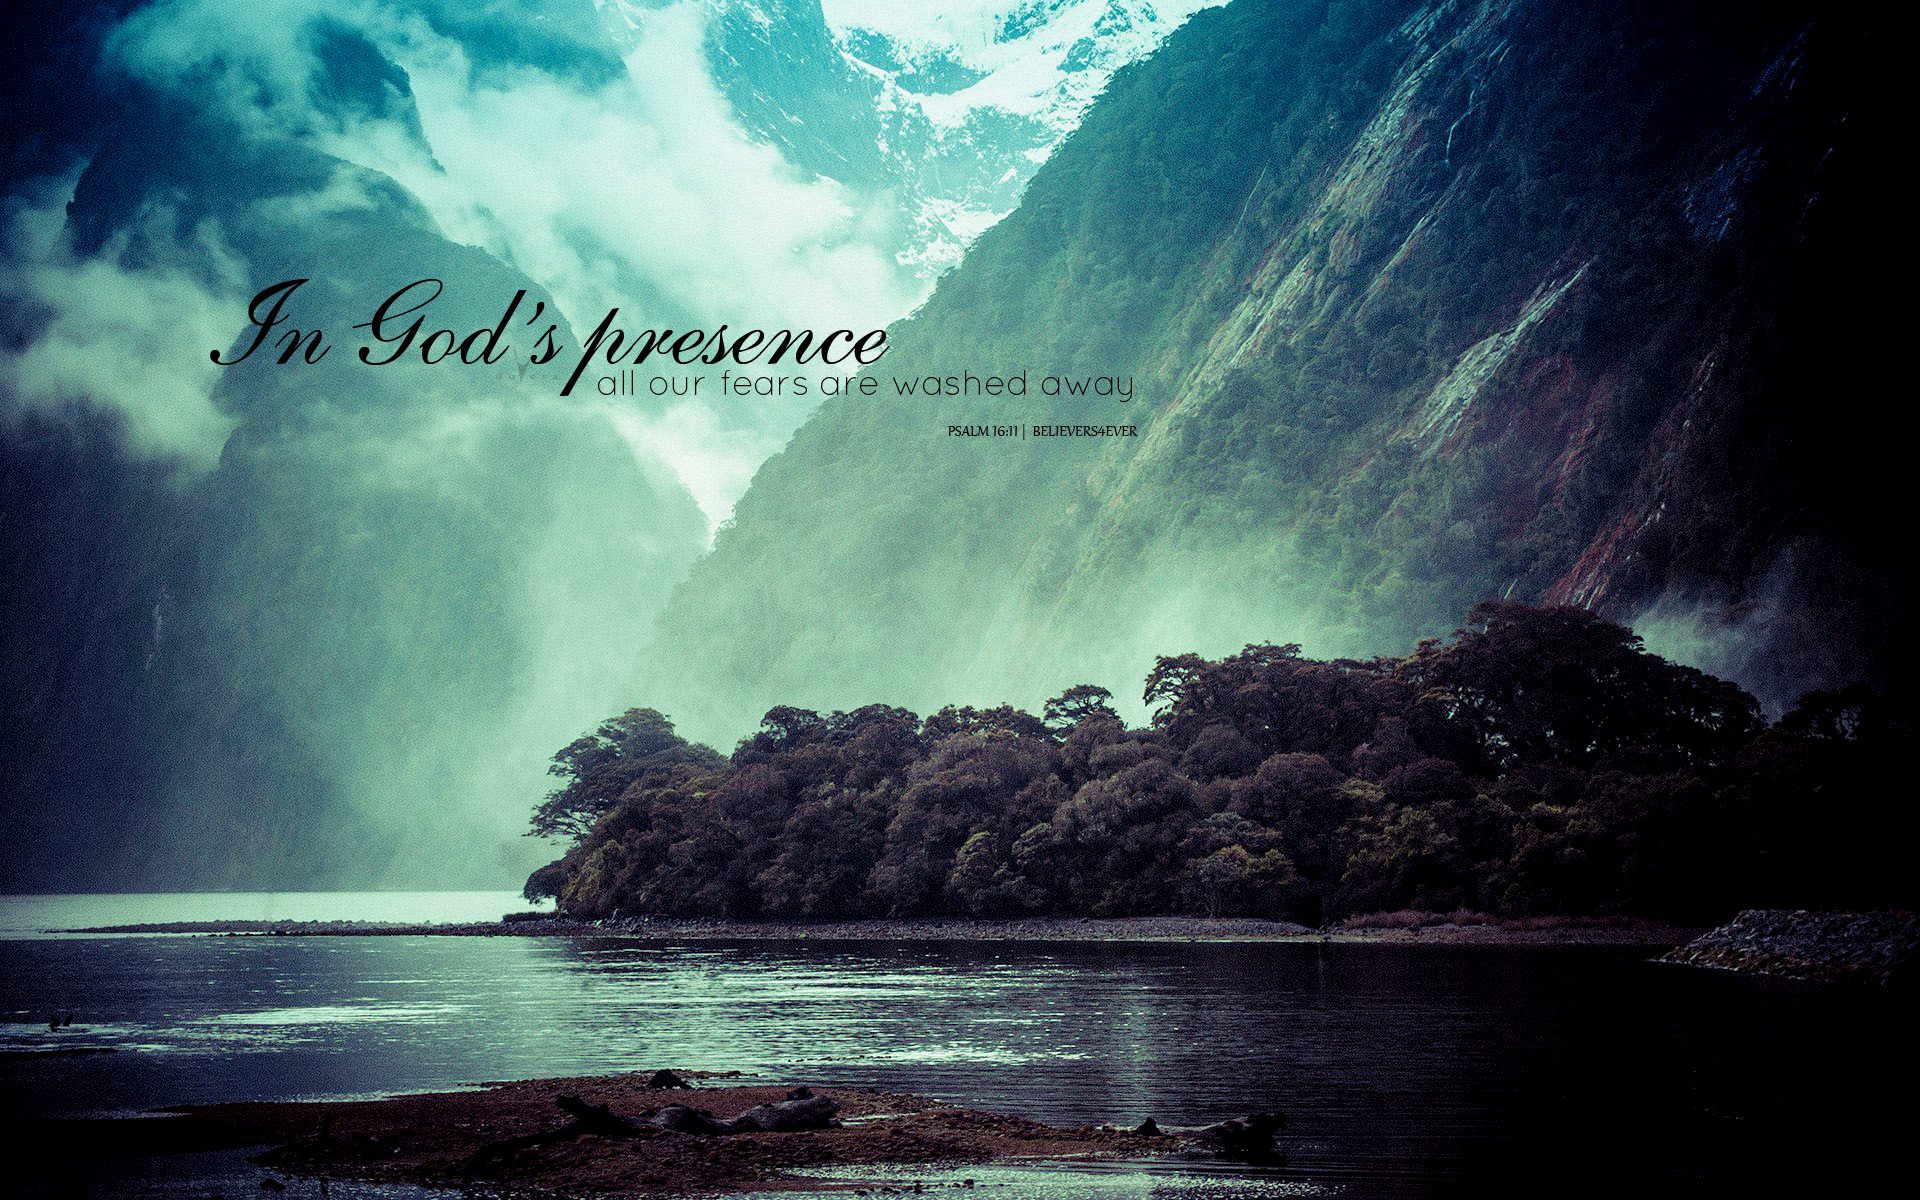 Christian Backgrounds by Taren Riera on BsnSCB